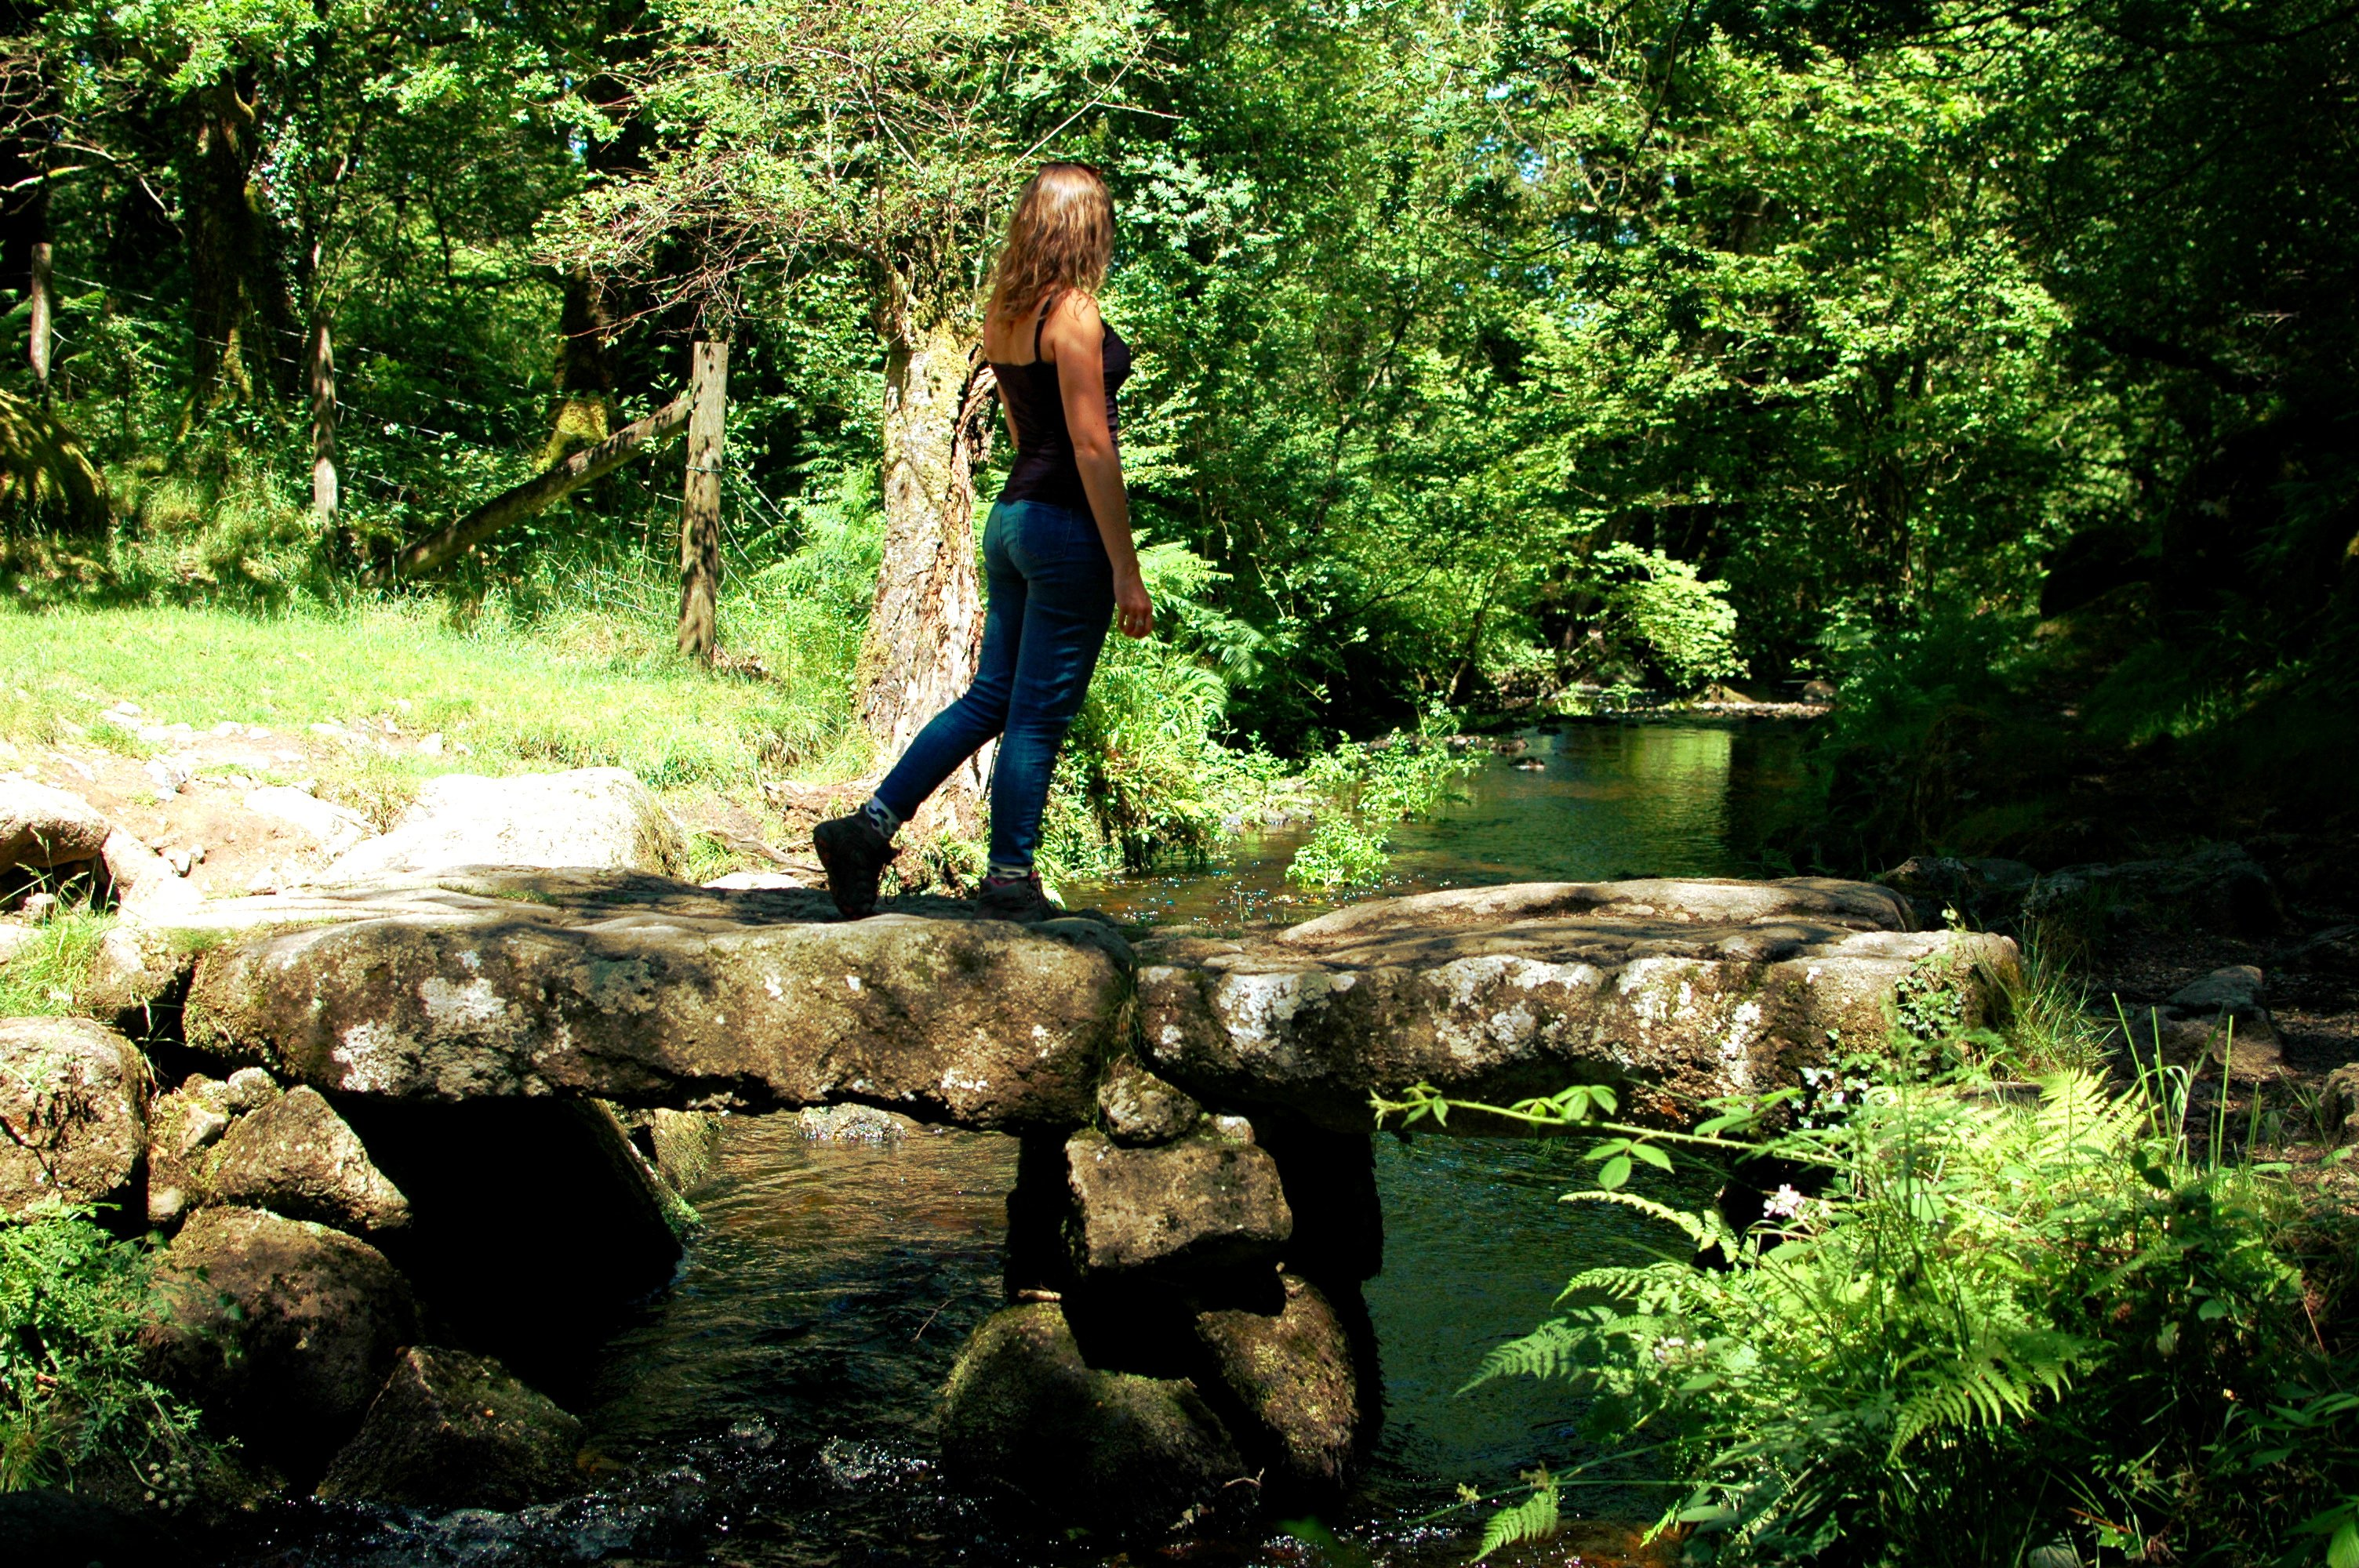 Walking across bridge in Dartmoor, Devon, England